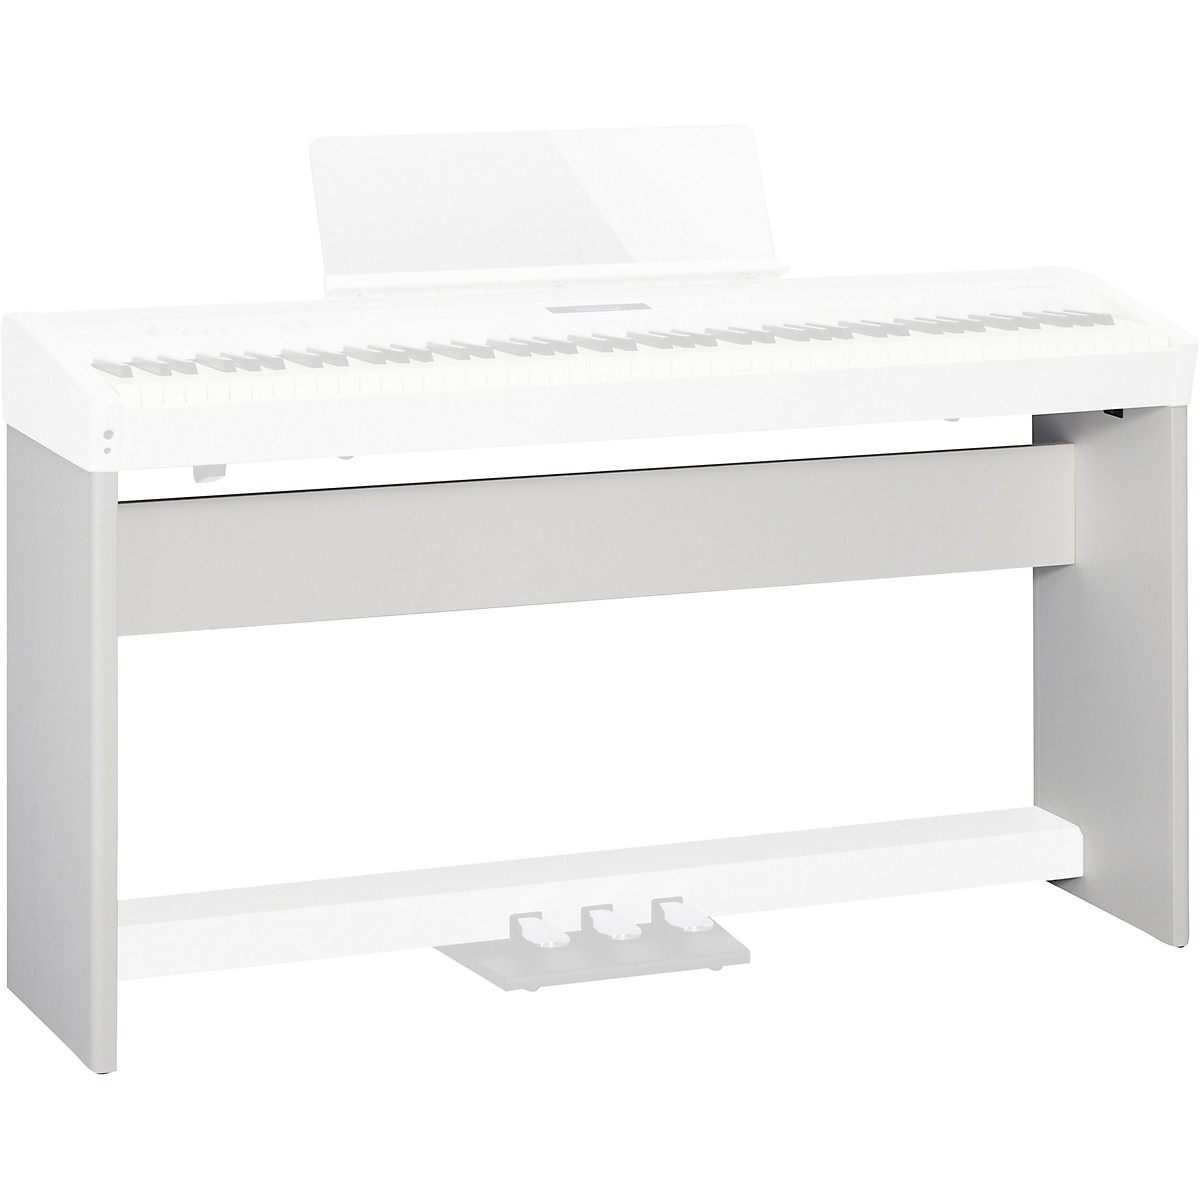 Roland KSC-72 Stand for FP-60 Digital Piano